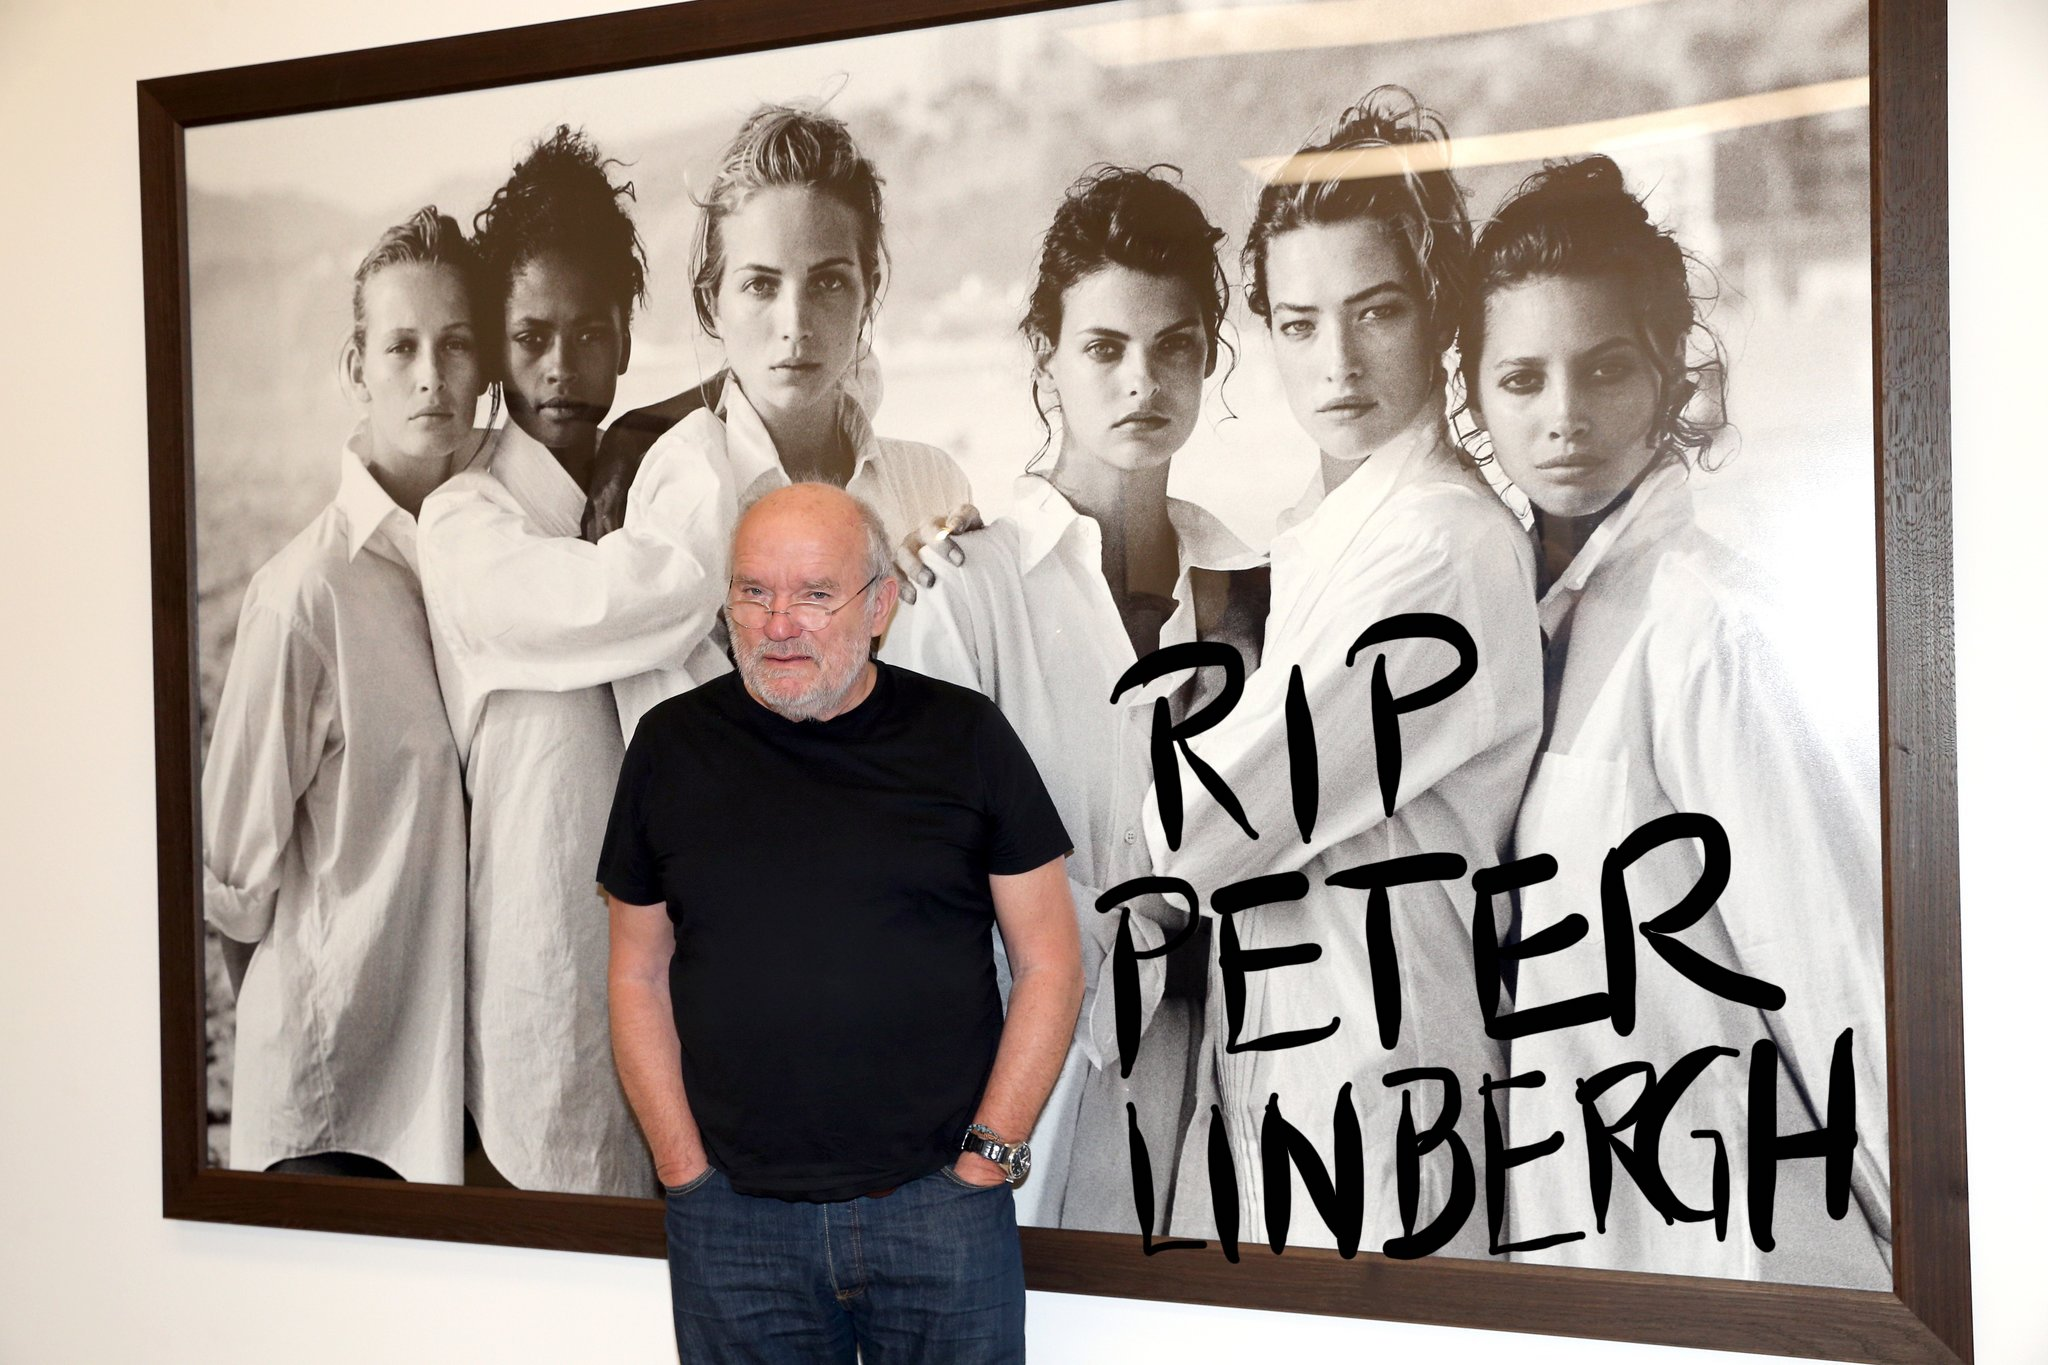 Peter Lindbergh in 2017 in Munich